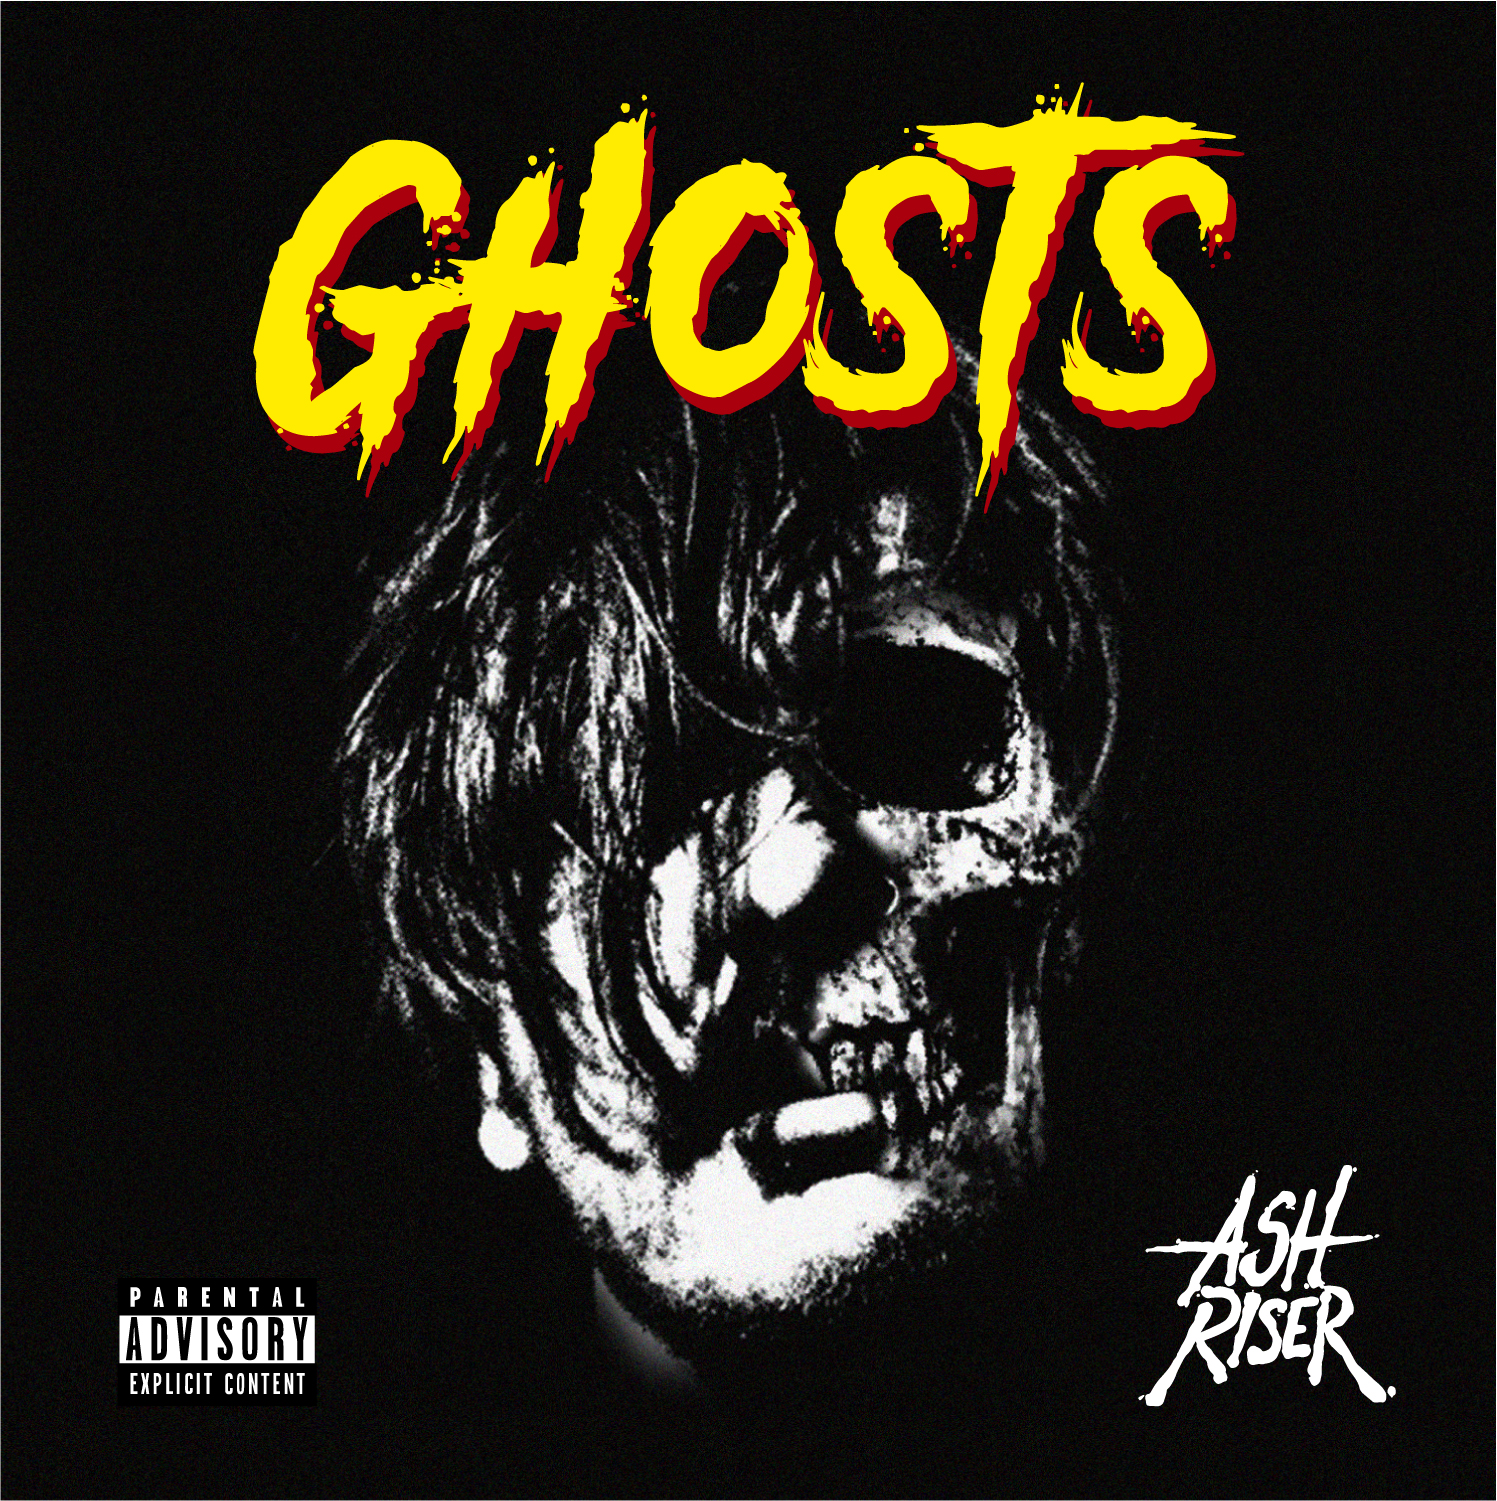 ash ghosts jpg Ash Riser shares his debut full length album, Ghosts: Stream